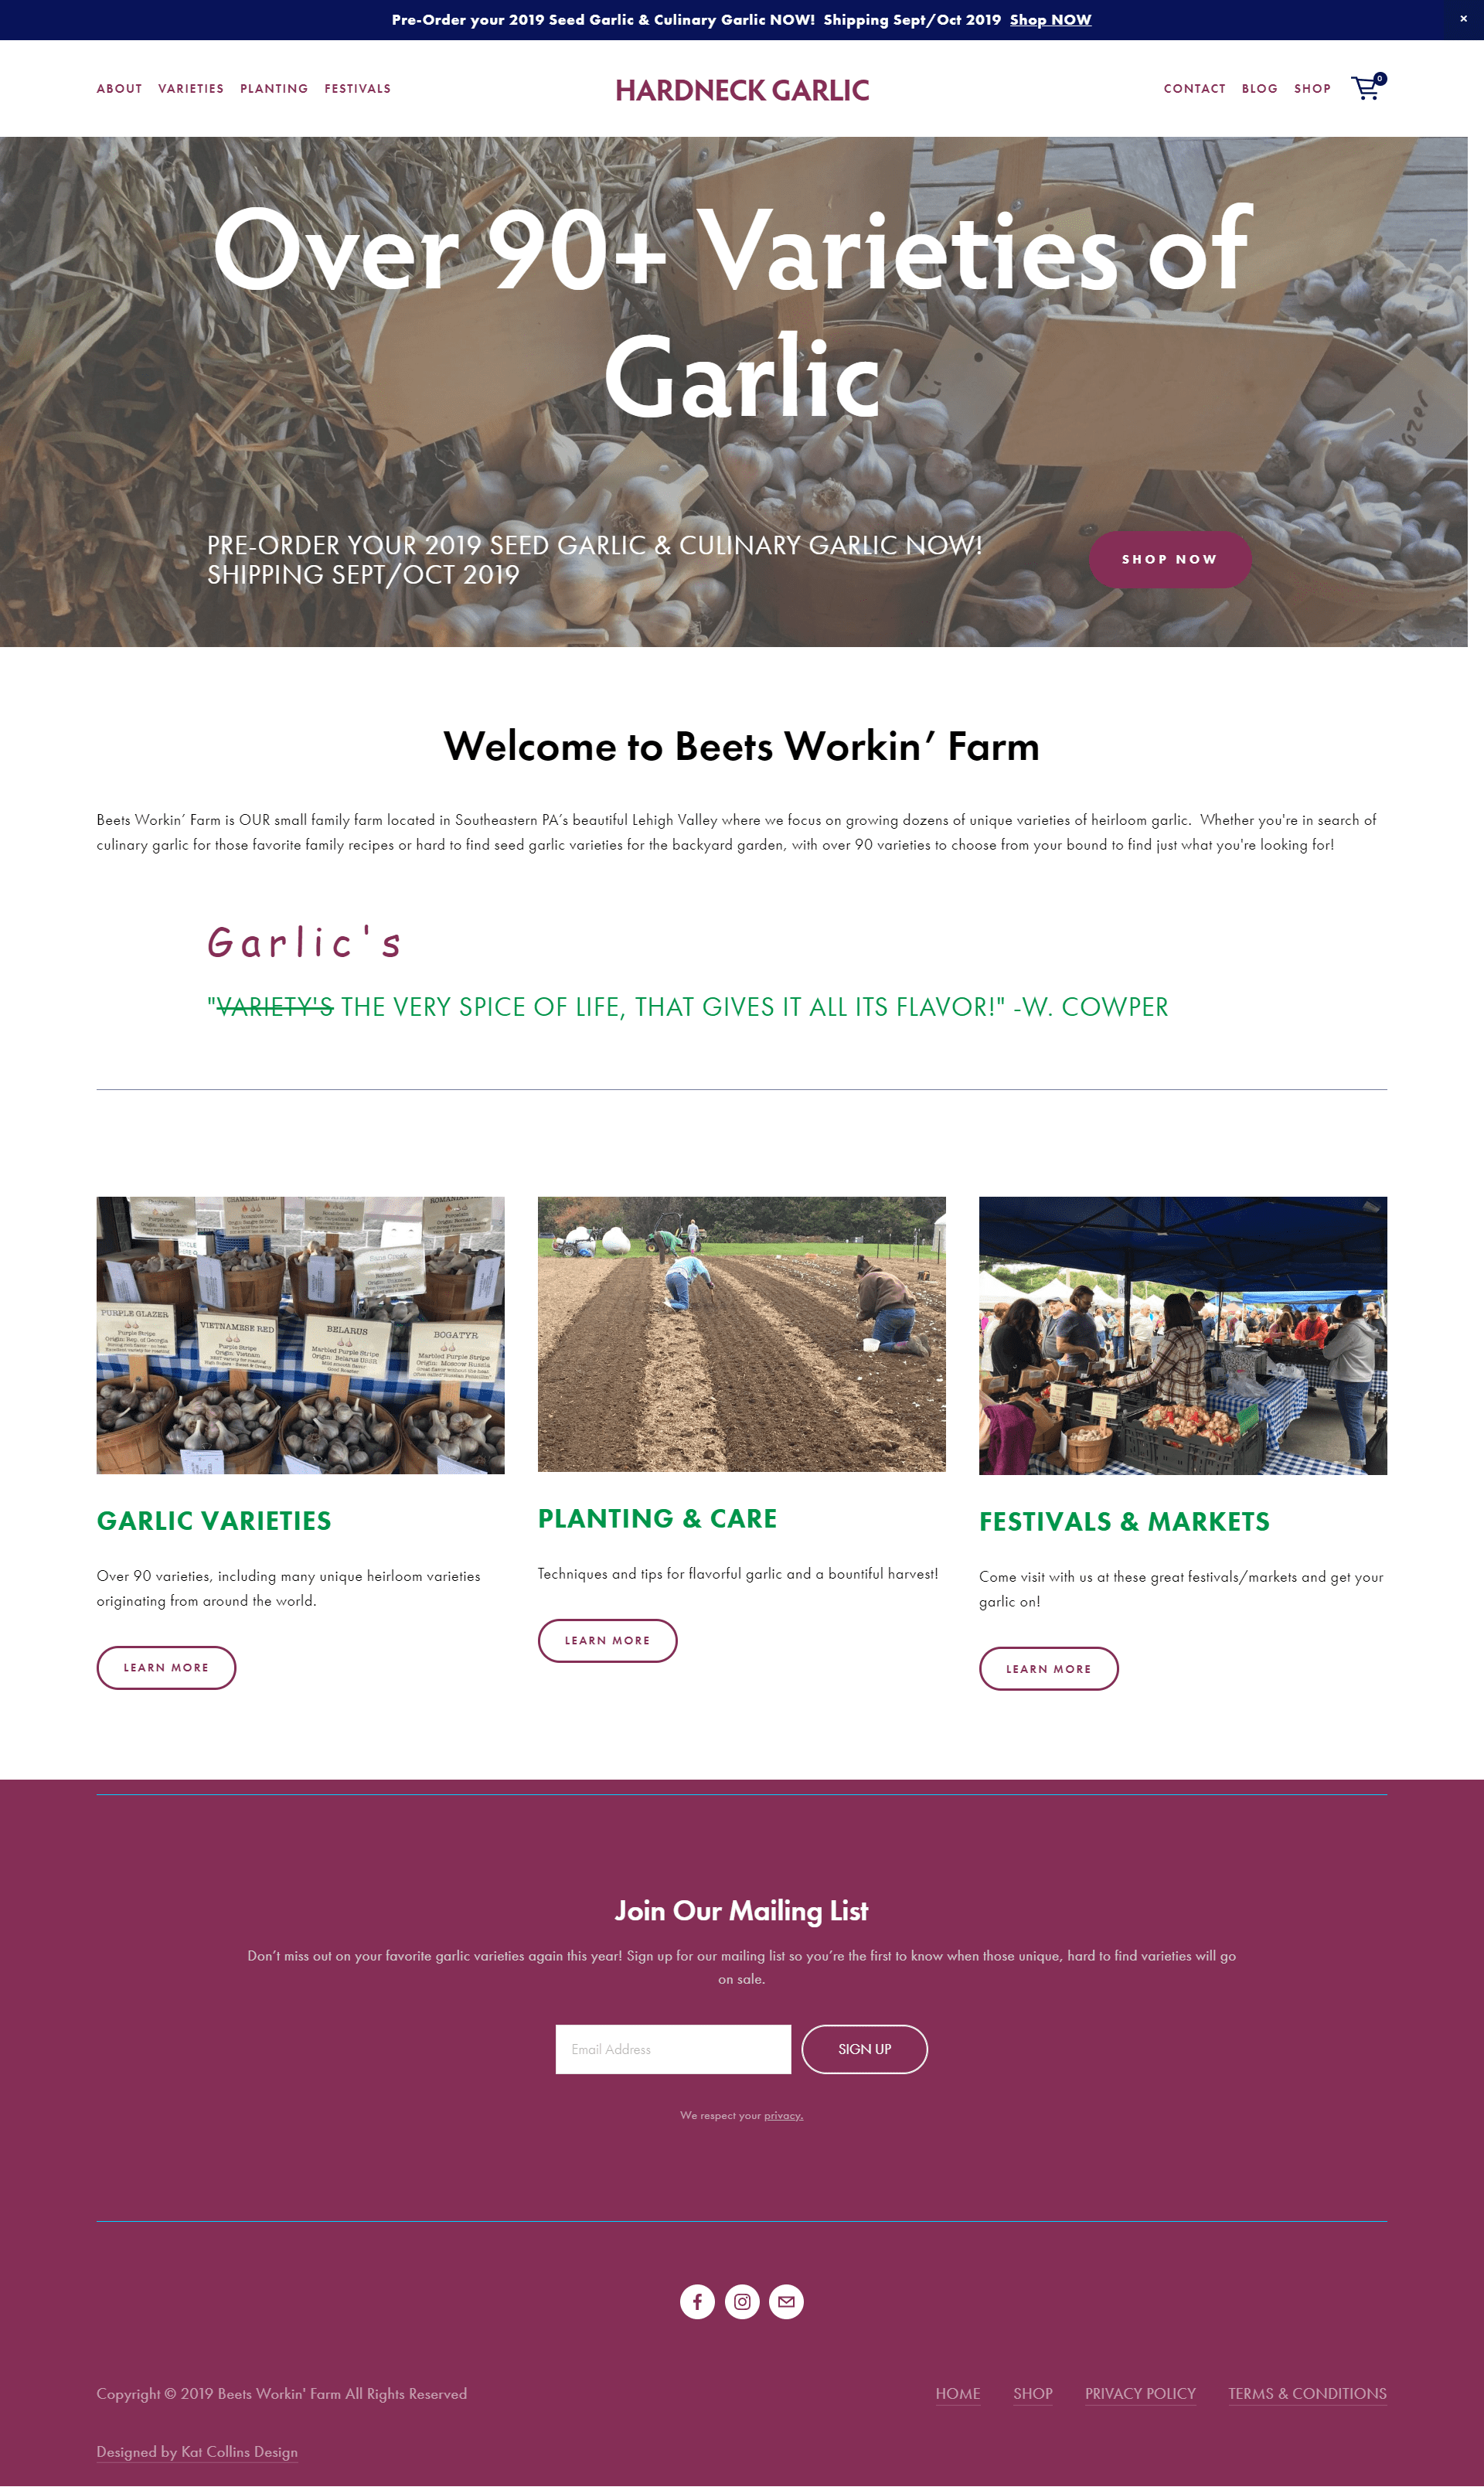 Hardneck Garlic Beets Workin Farm Website Design and eCommerce